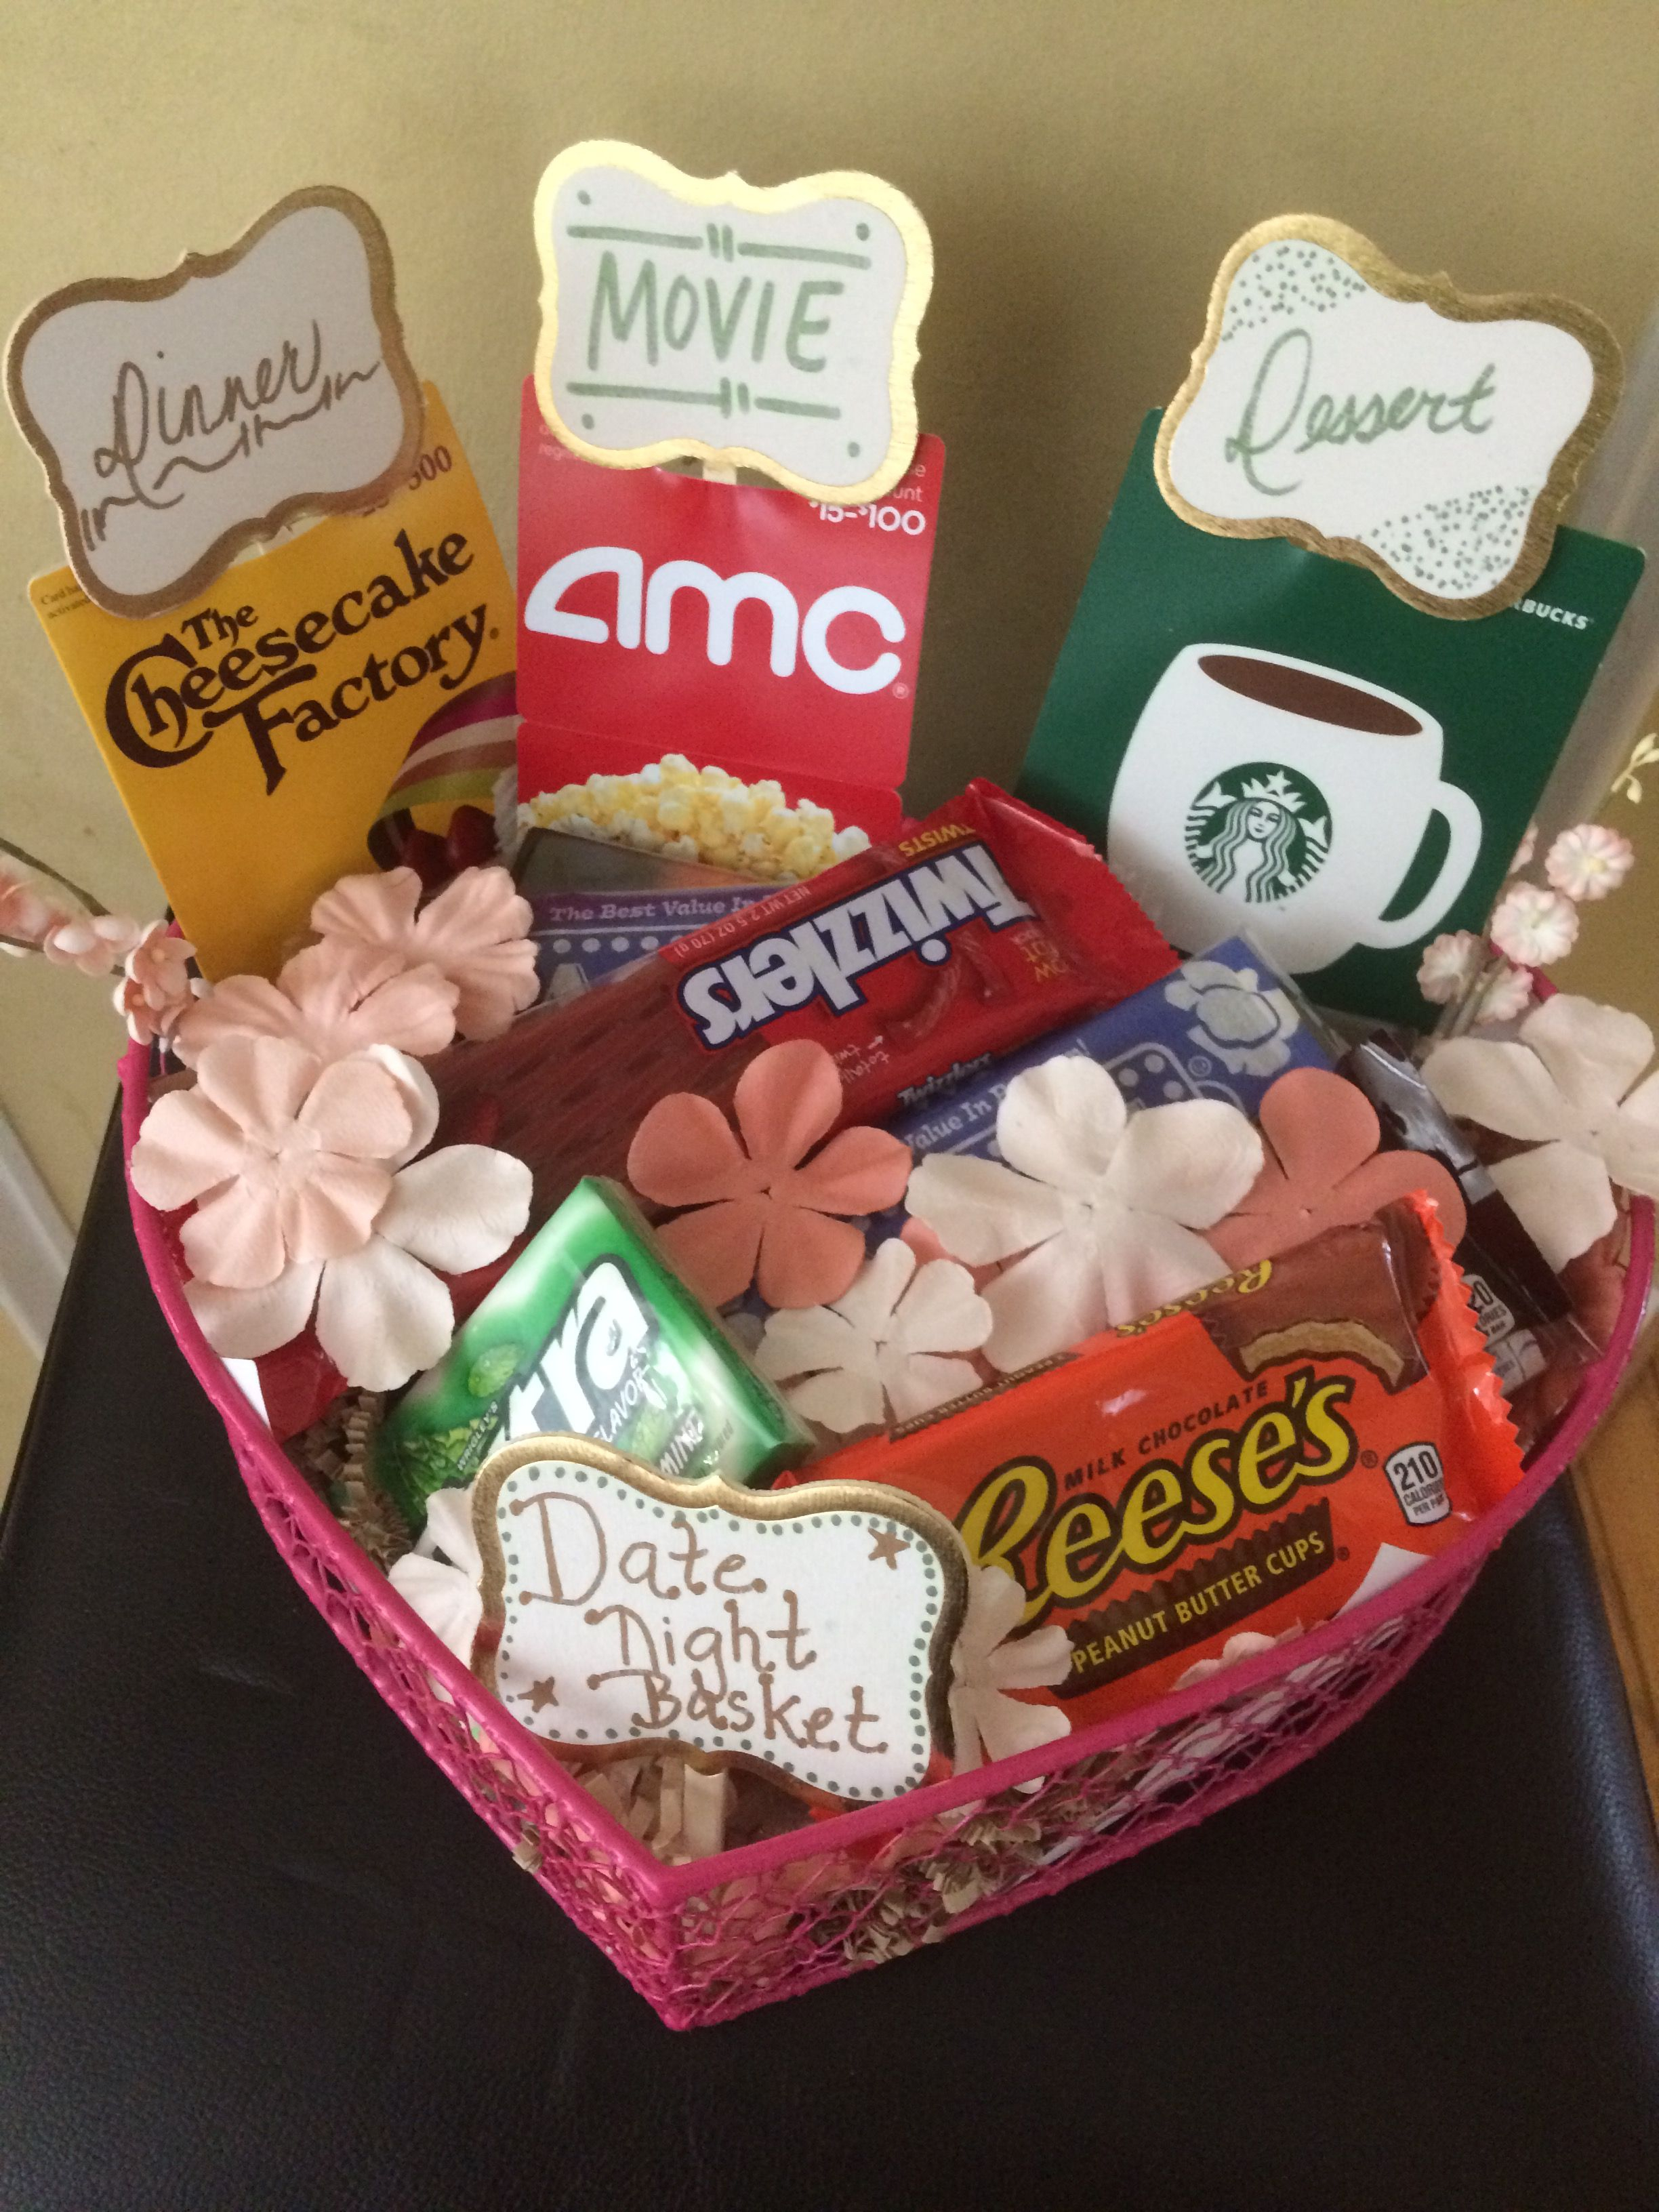 10 Perfect Unique Bridal Shower Gift Ideas For Bride date night basket for bride to be wedding shower gift diy crafts 2020